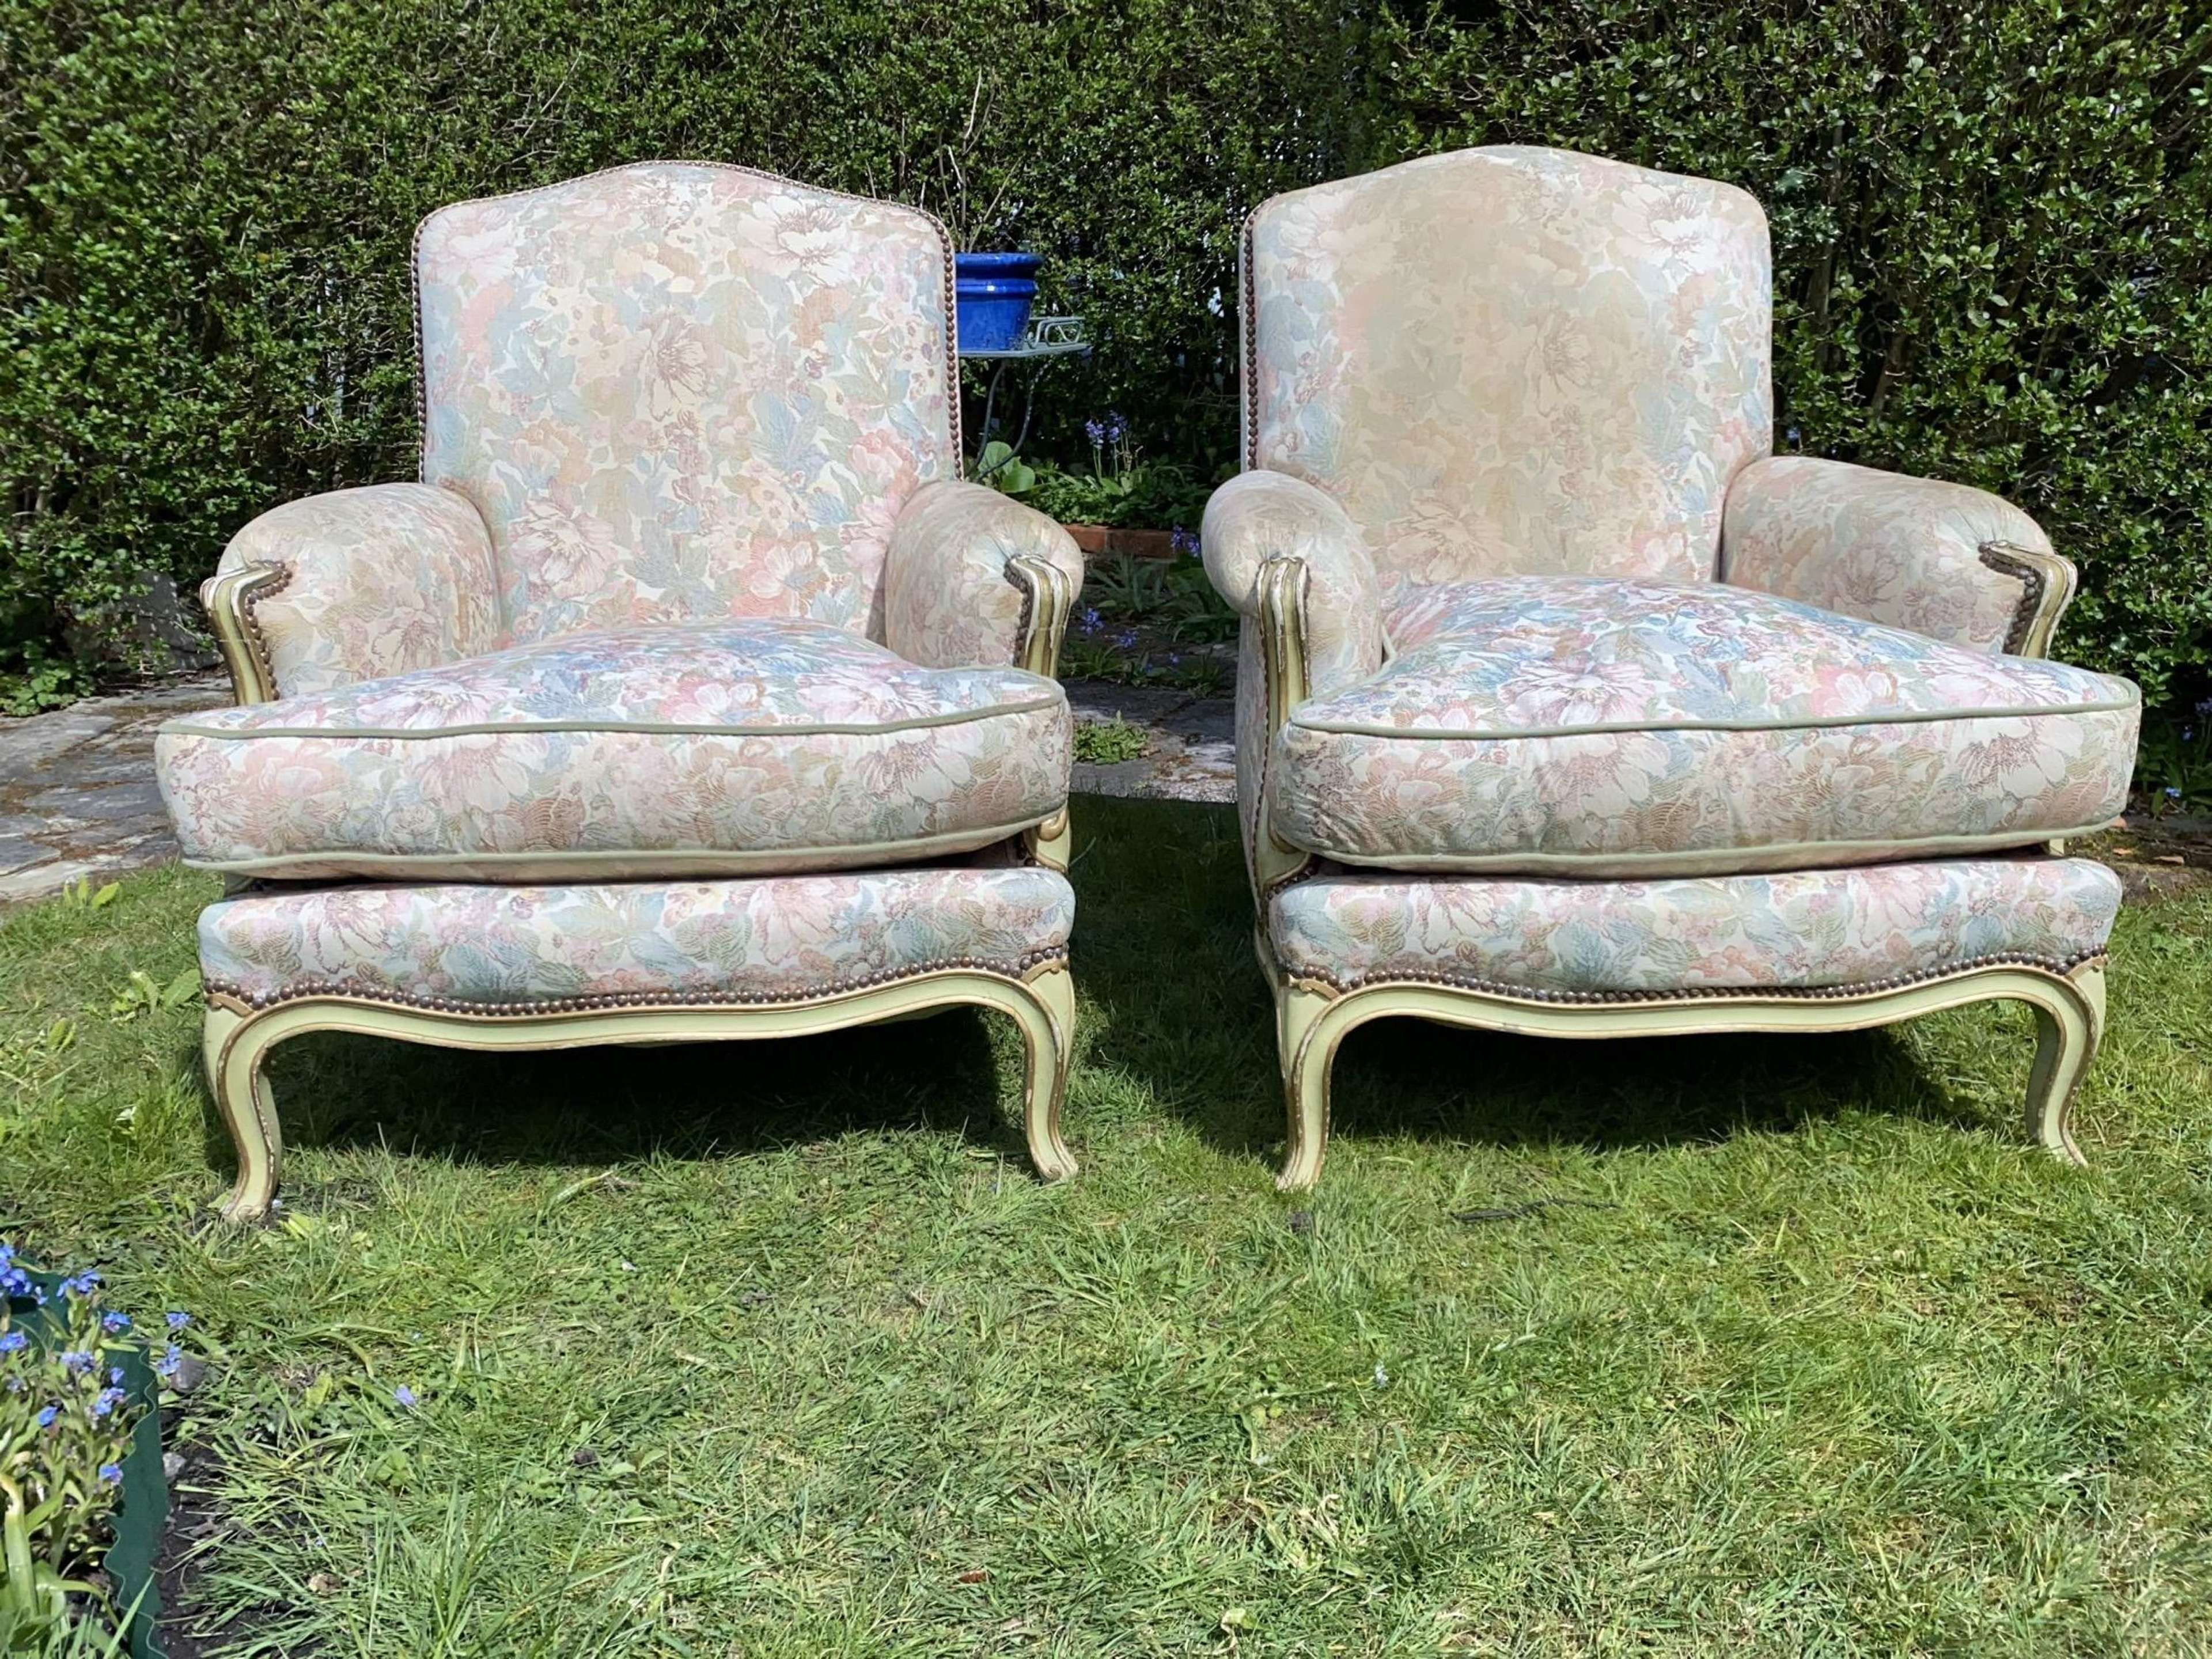 Pair of Louis XVI style Bergere armchairs